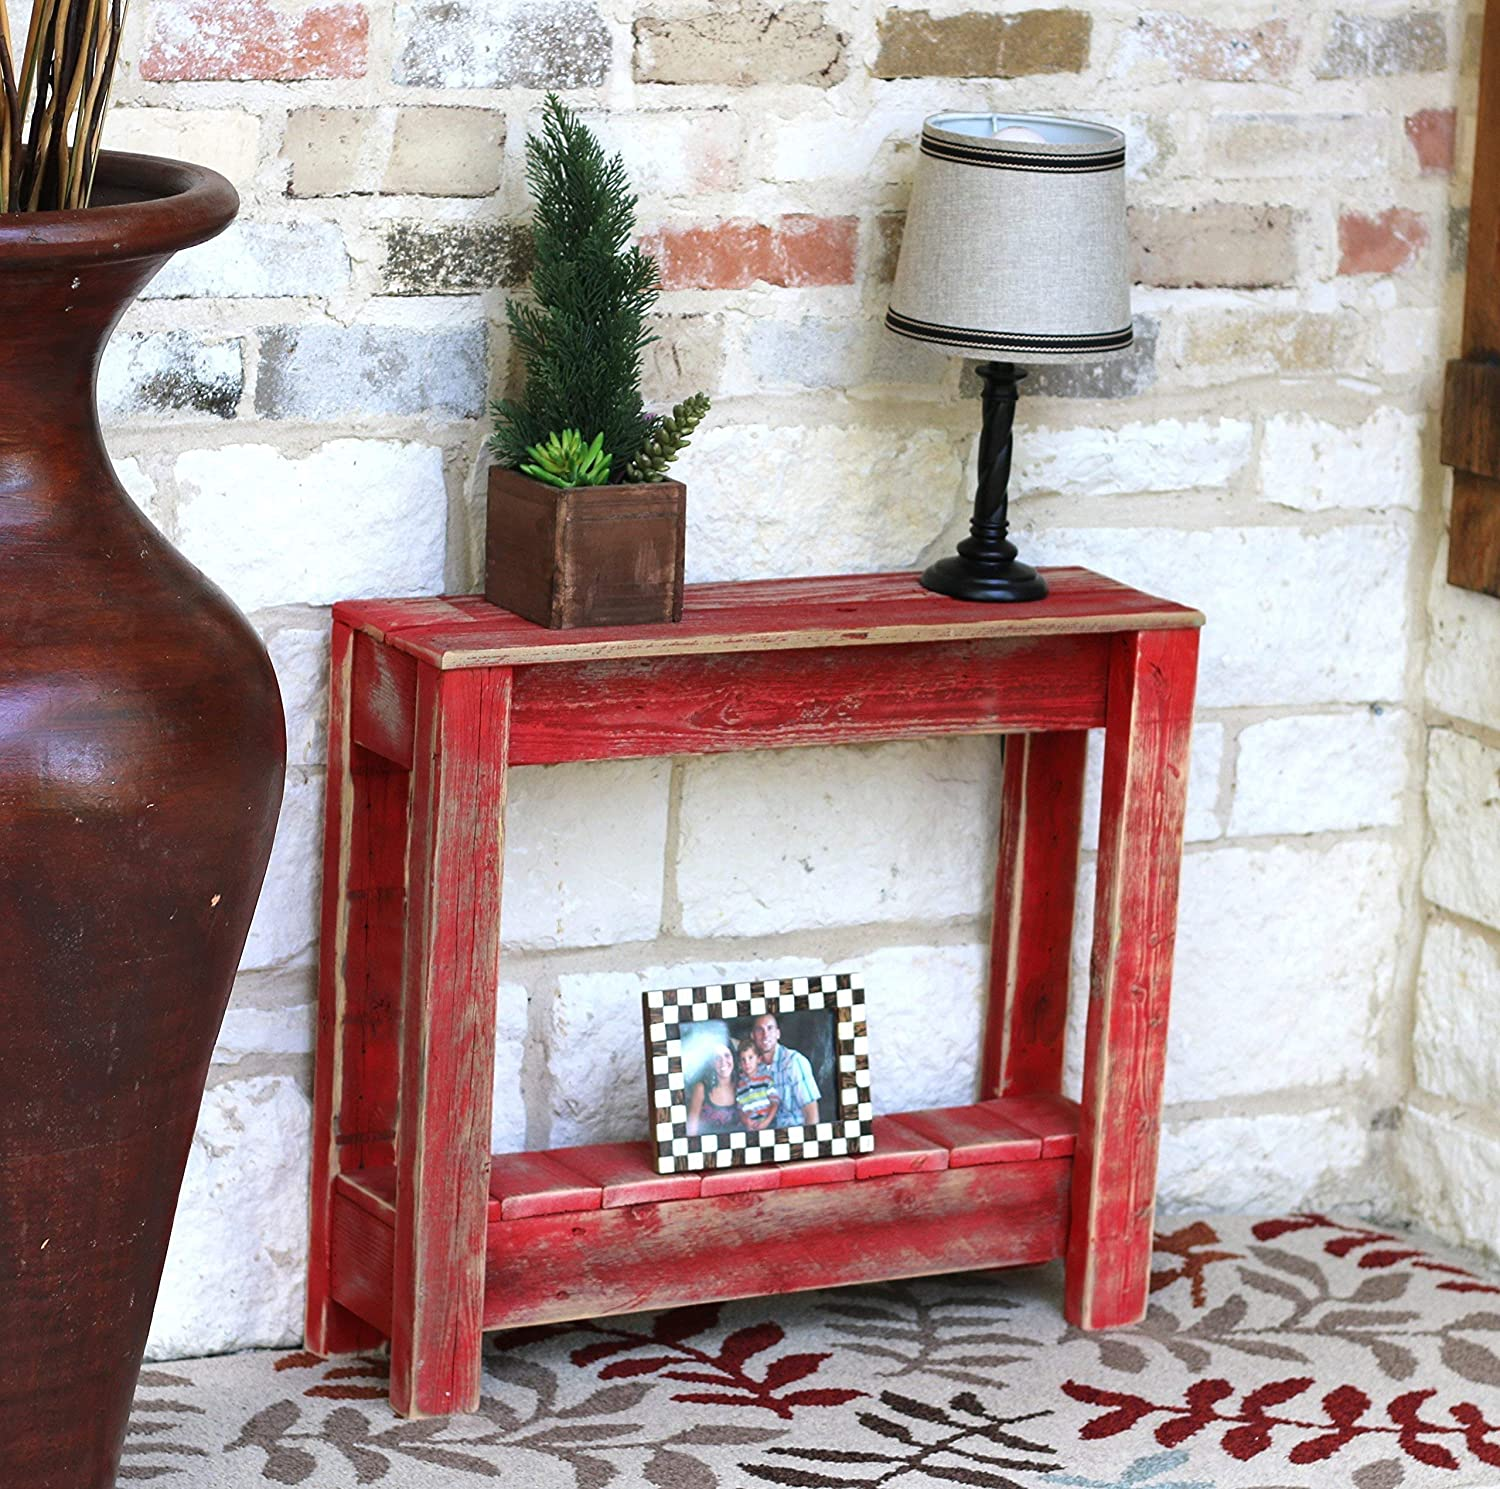 - Amazon.com: Red Accent Table: Handmade